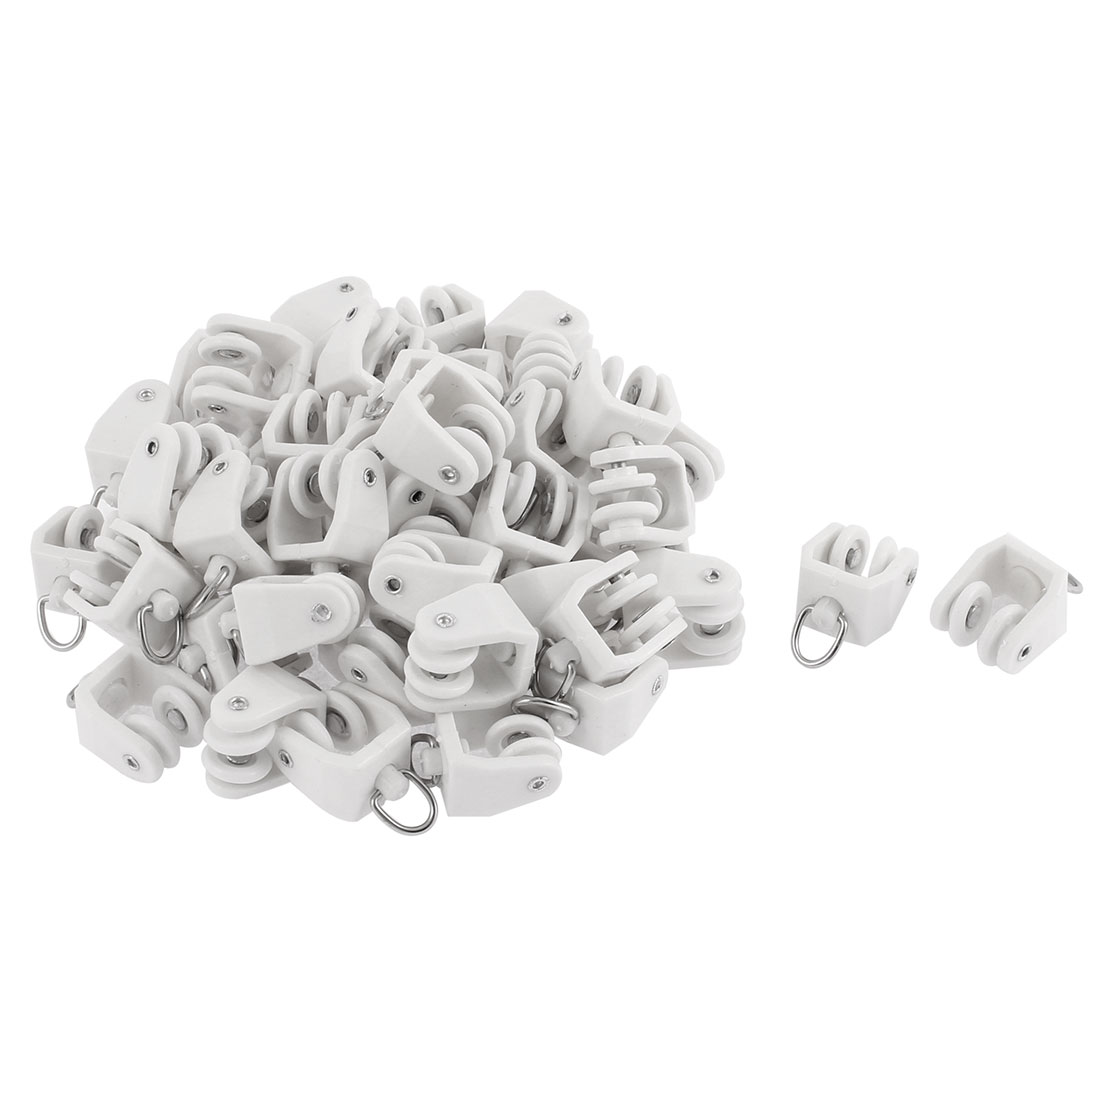 Plastic Swivel Eye Ring Curtain Track Rail Rollers Carrier White 50 Pcs